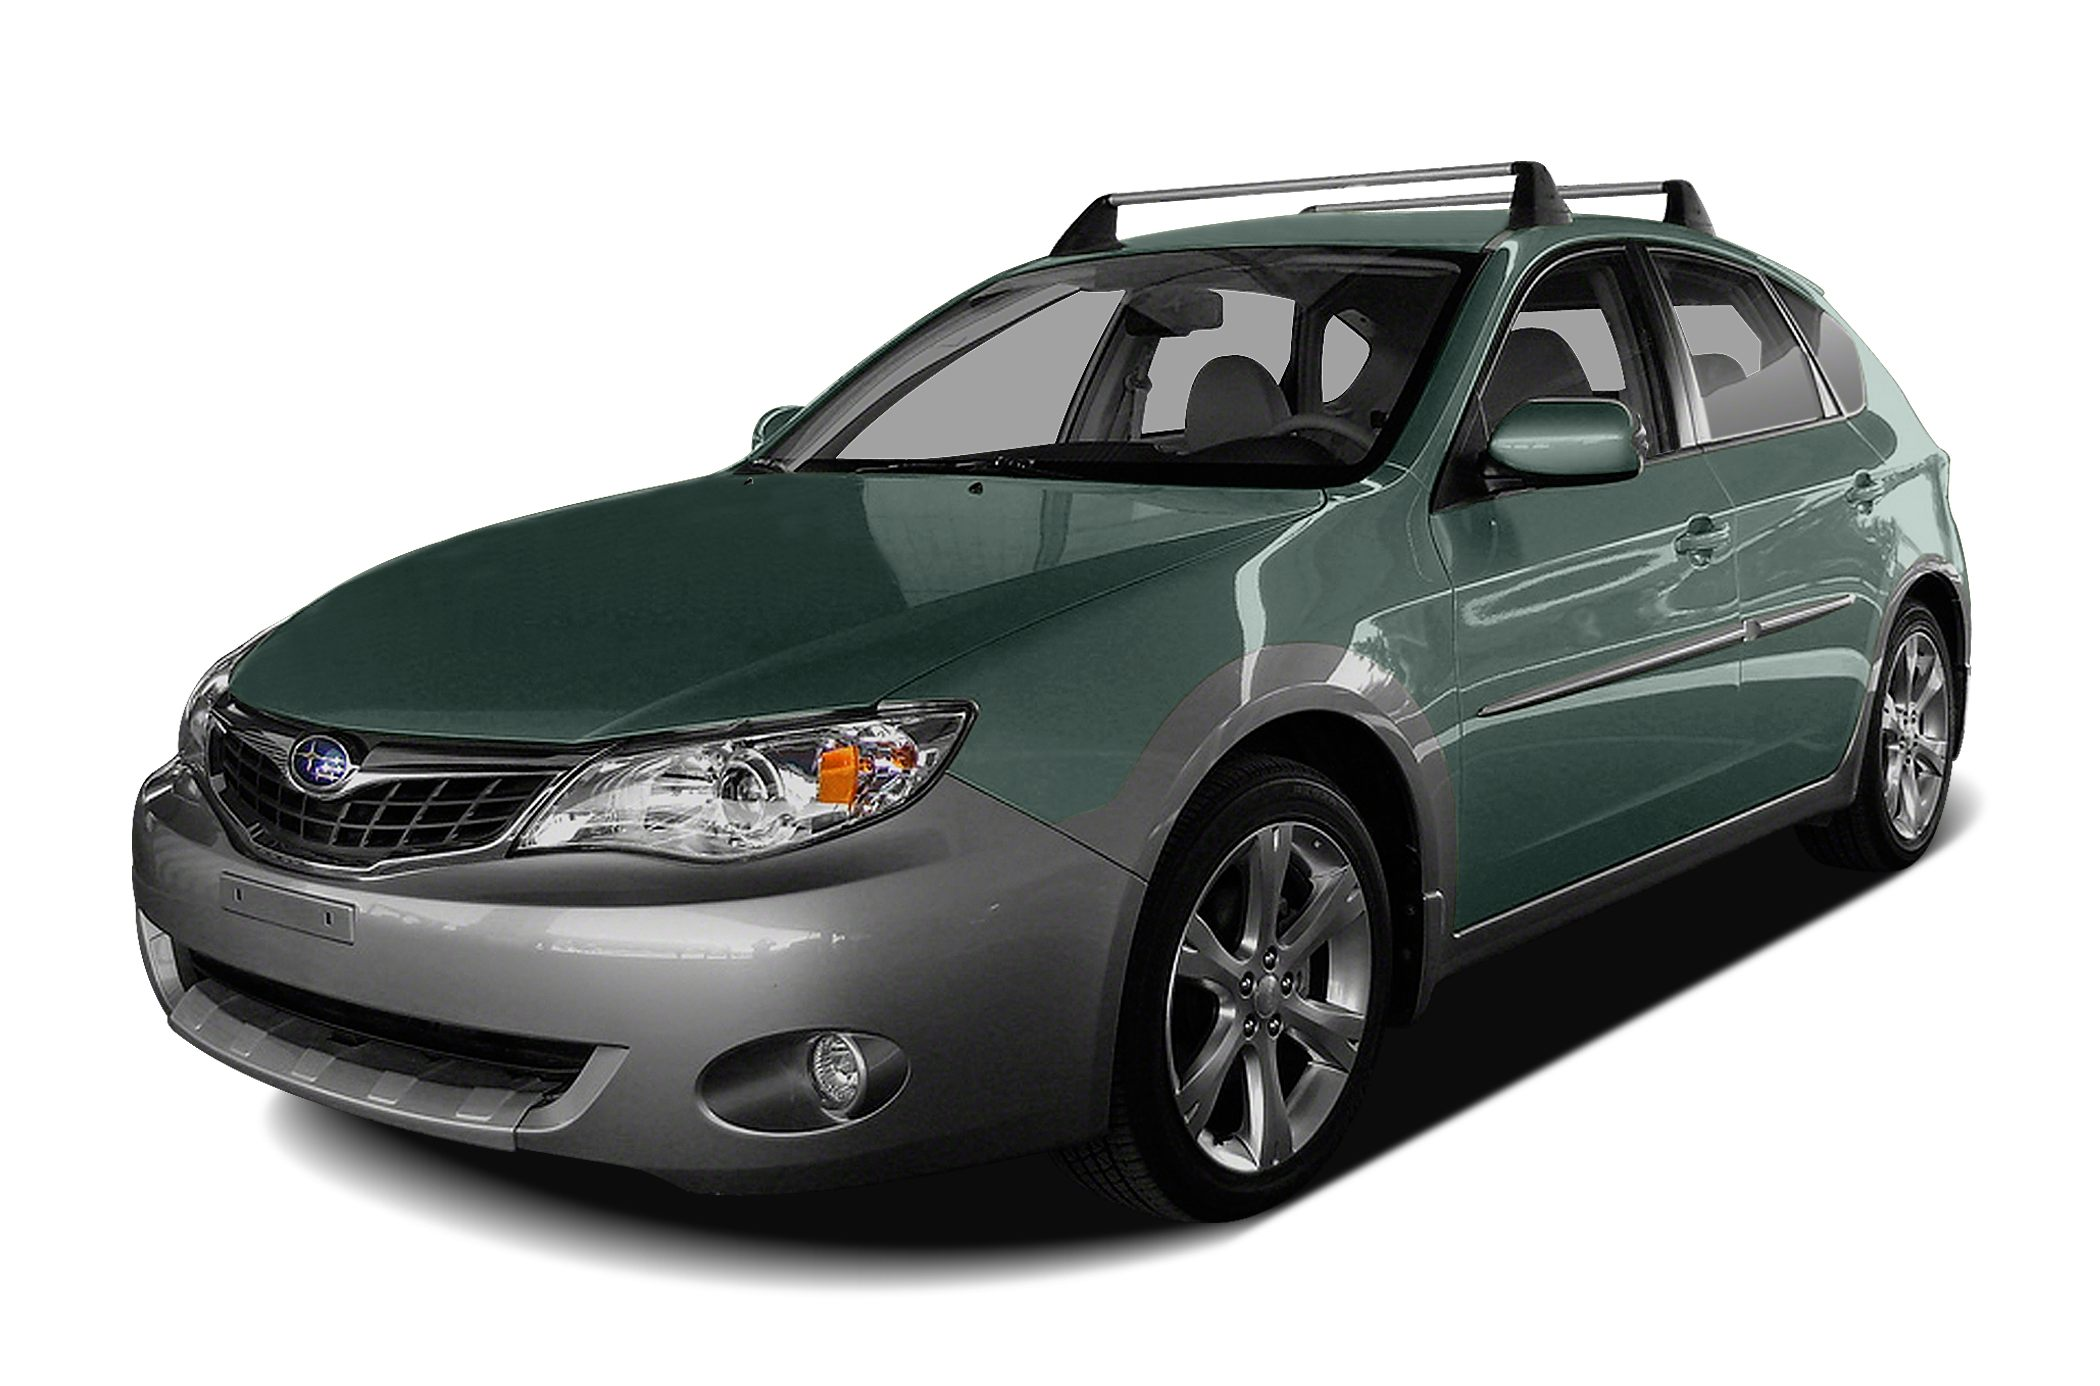 2011 Subaru Impreza Outback Sport Base Hatchback for sale in Macomb for $10,500 with 165,370 miles